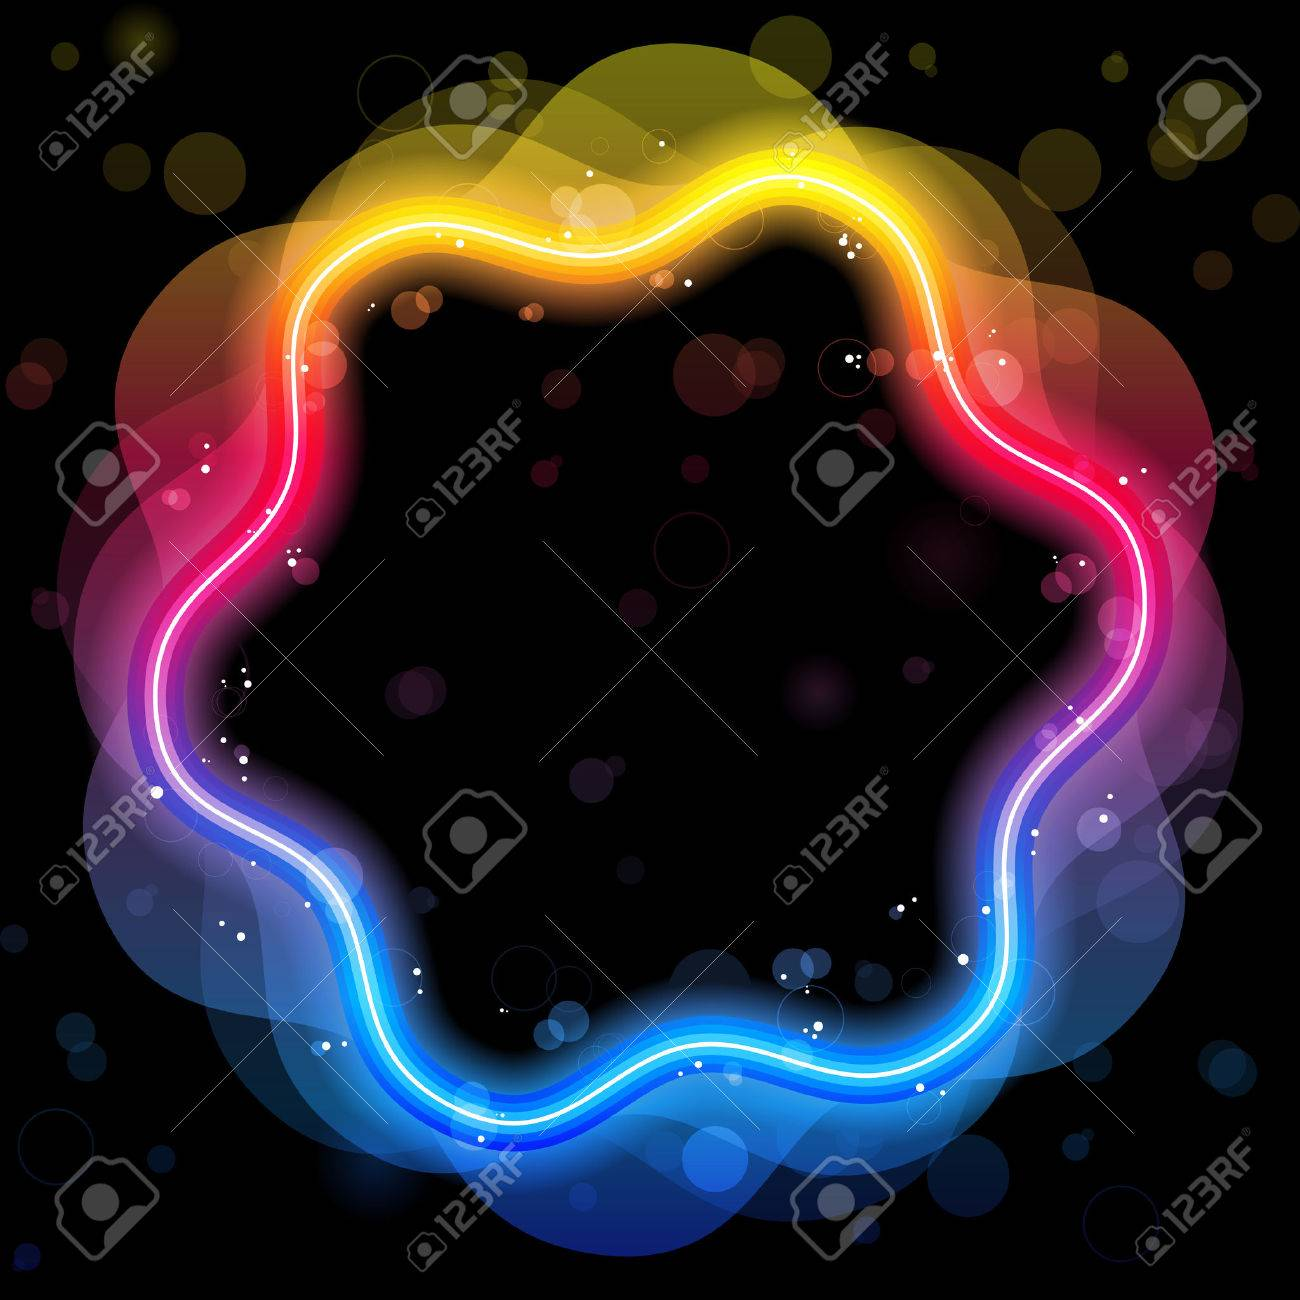 Rainbow Design Element Border with Sparkles and Swirls. Stock Vector - 7603683